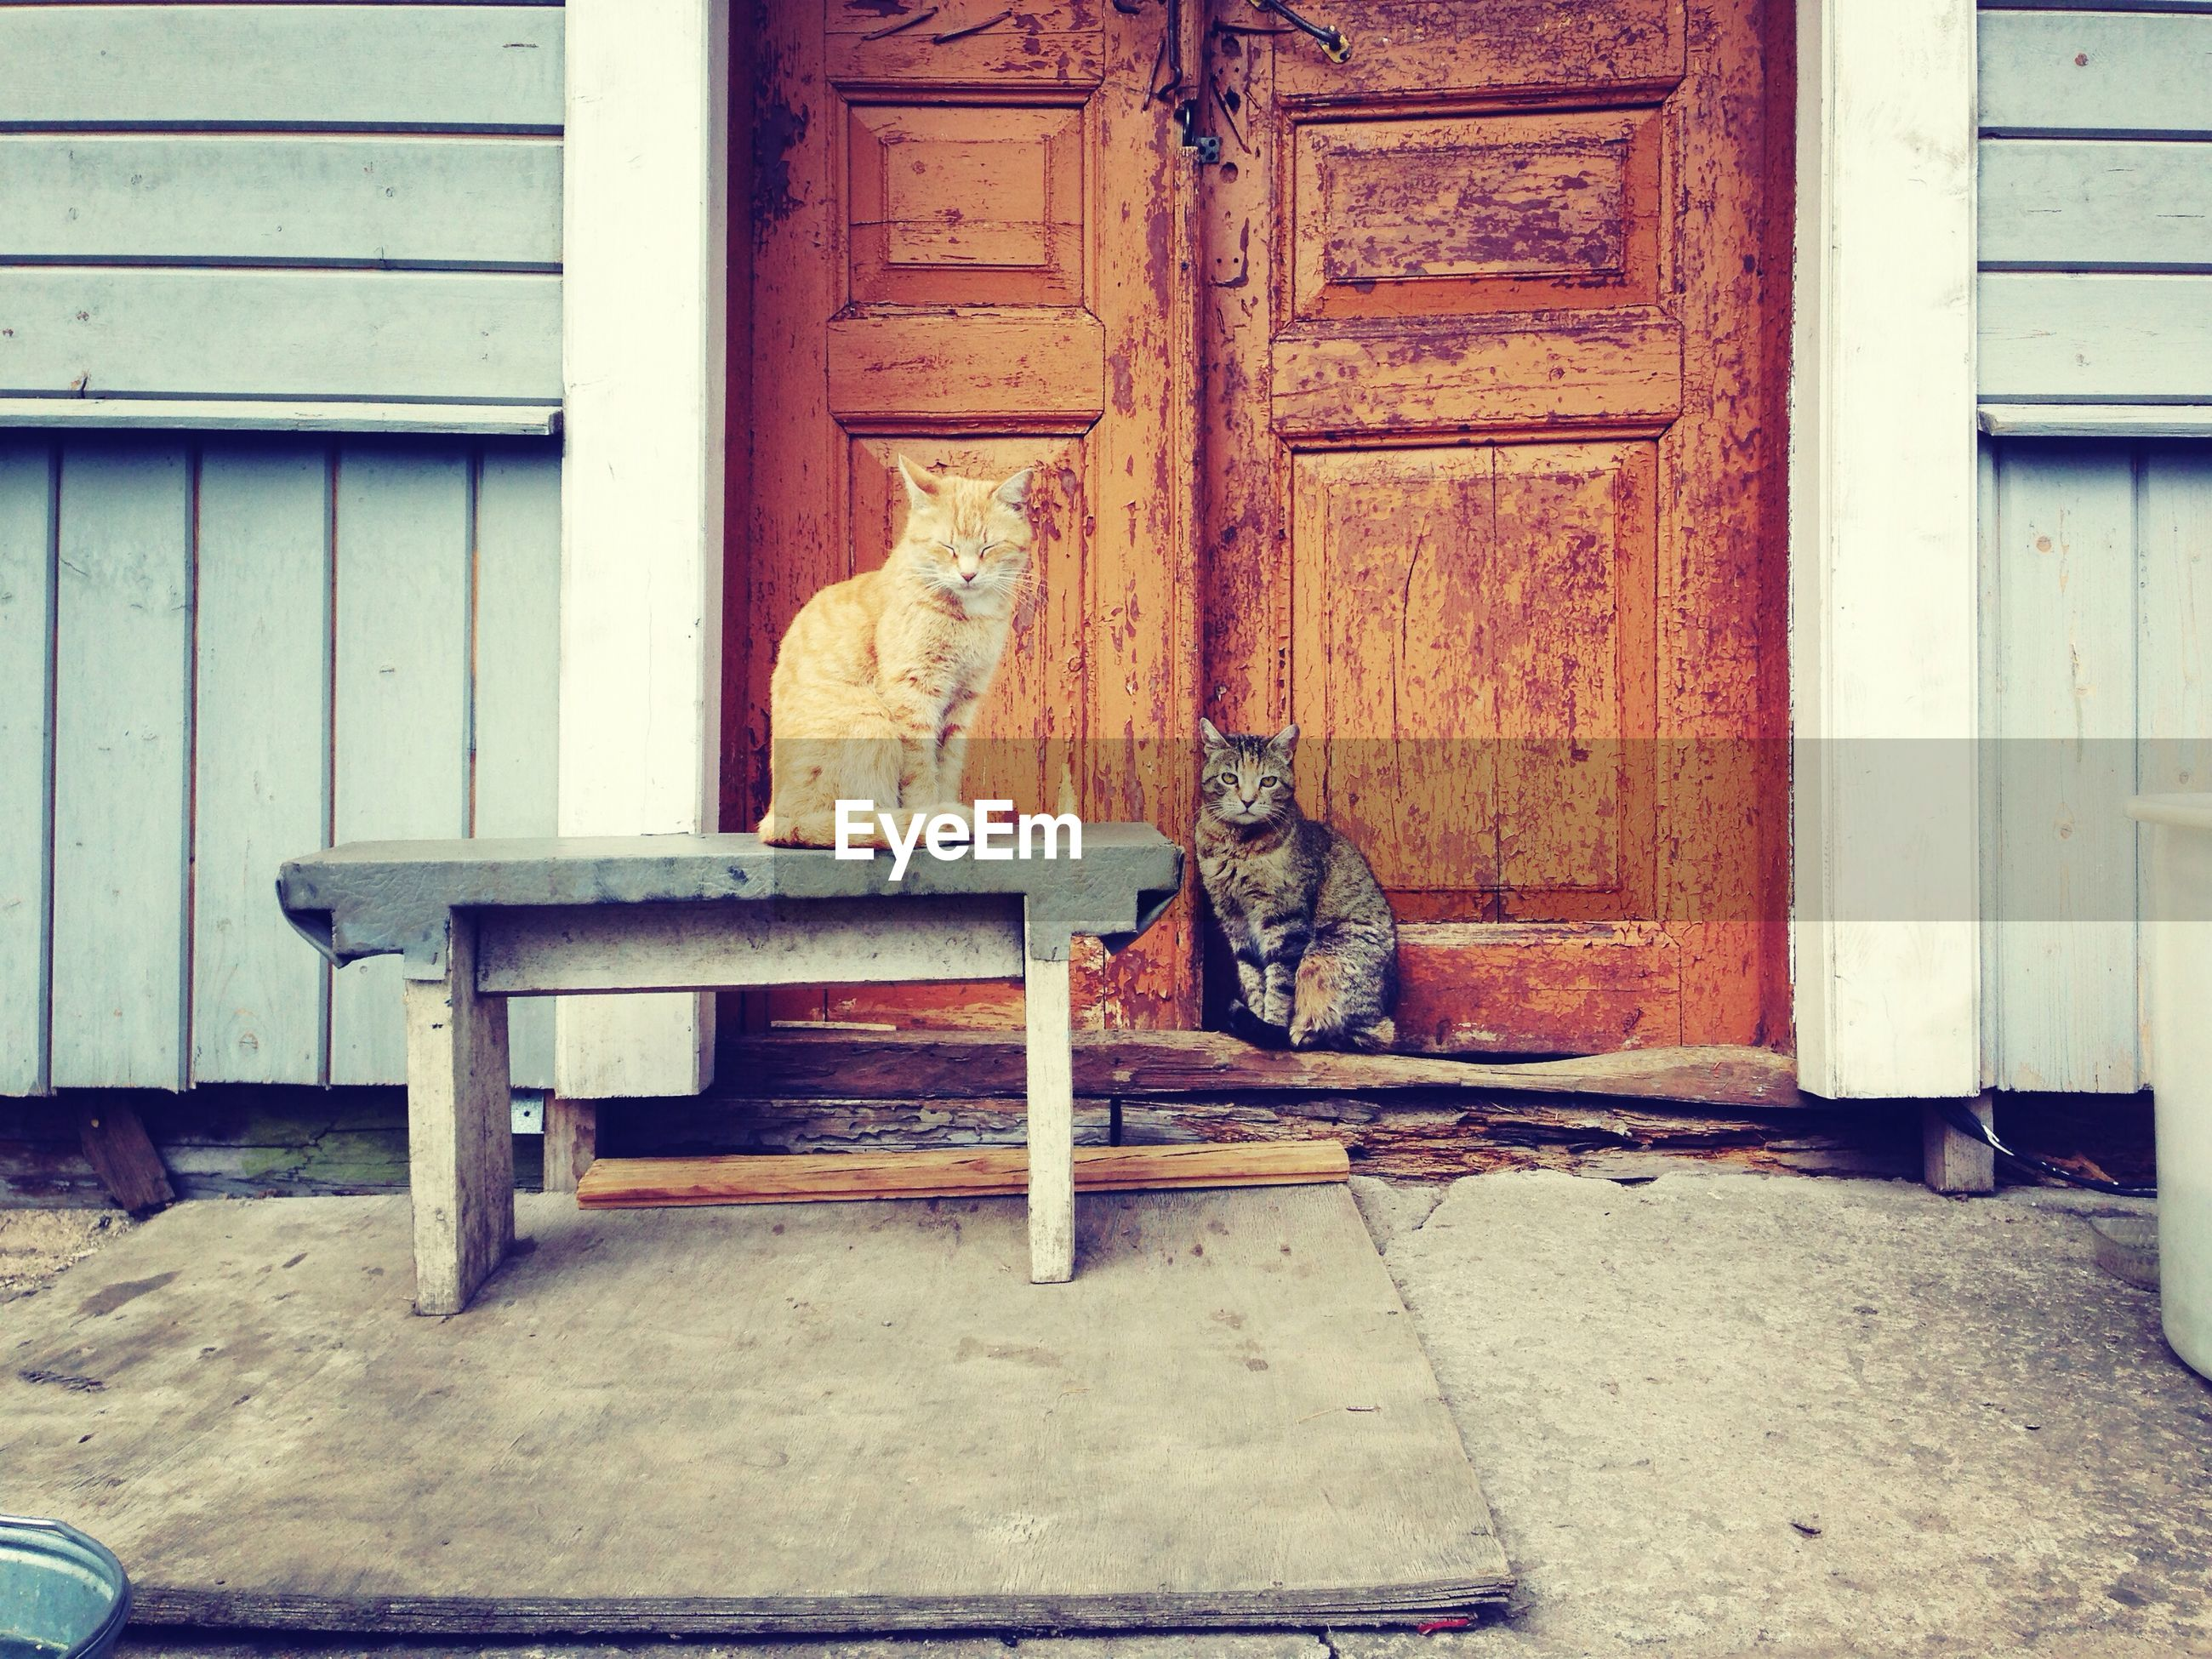 Two cats sitting on table in front of closed door